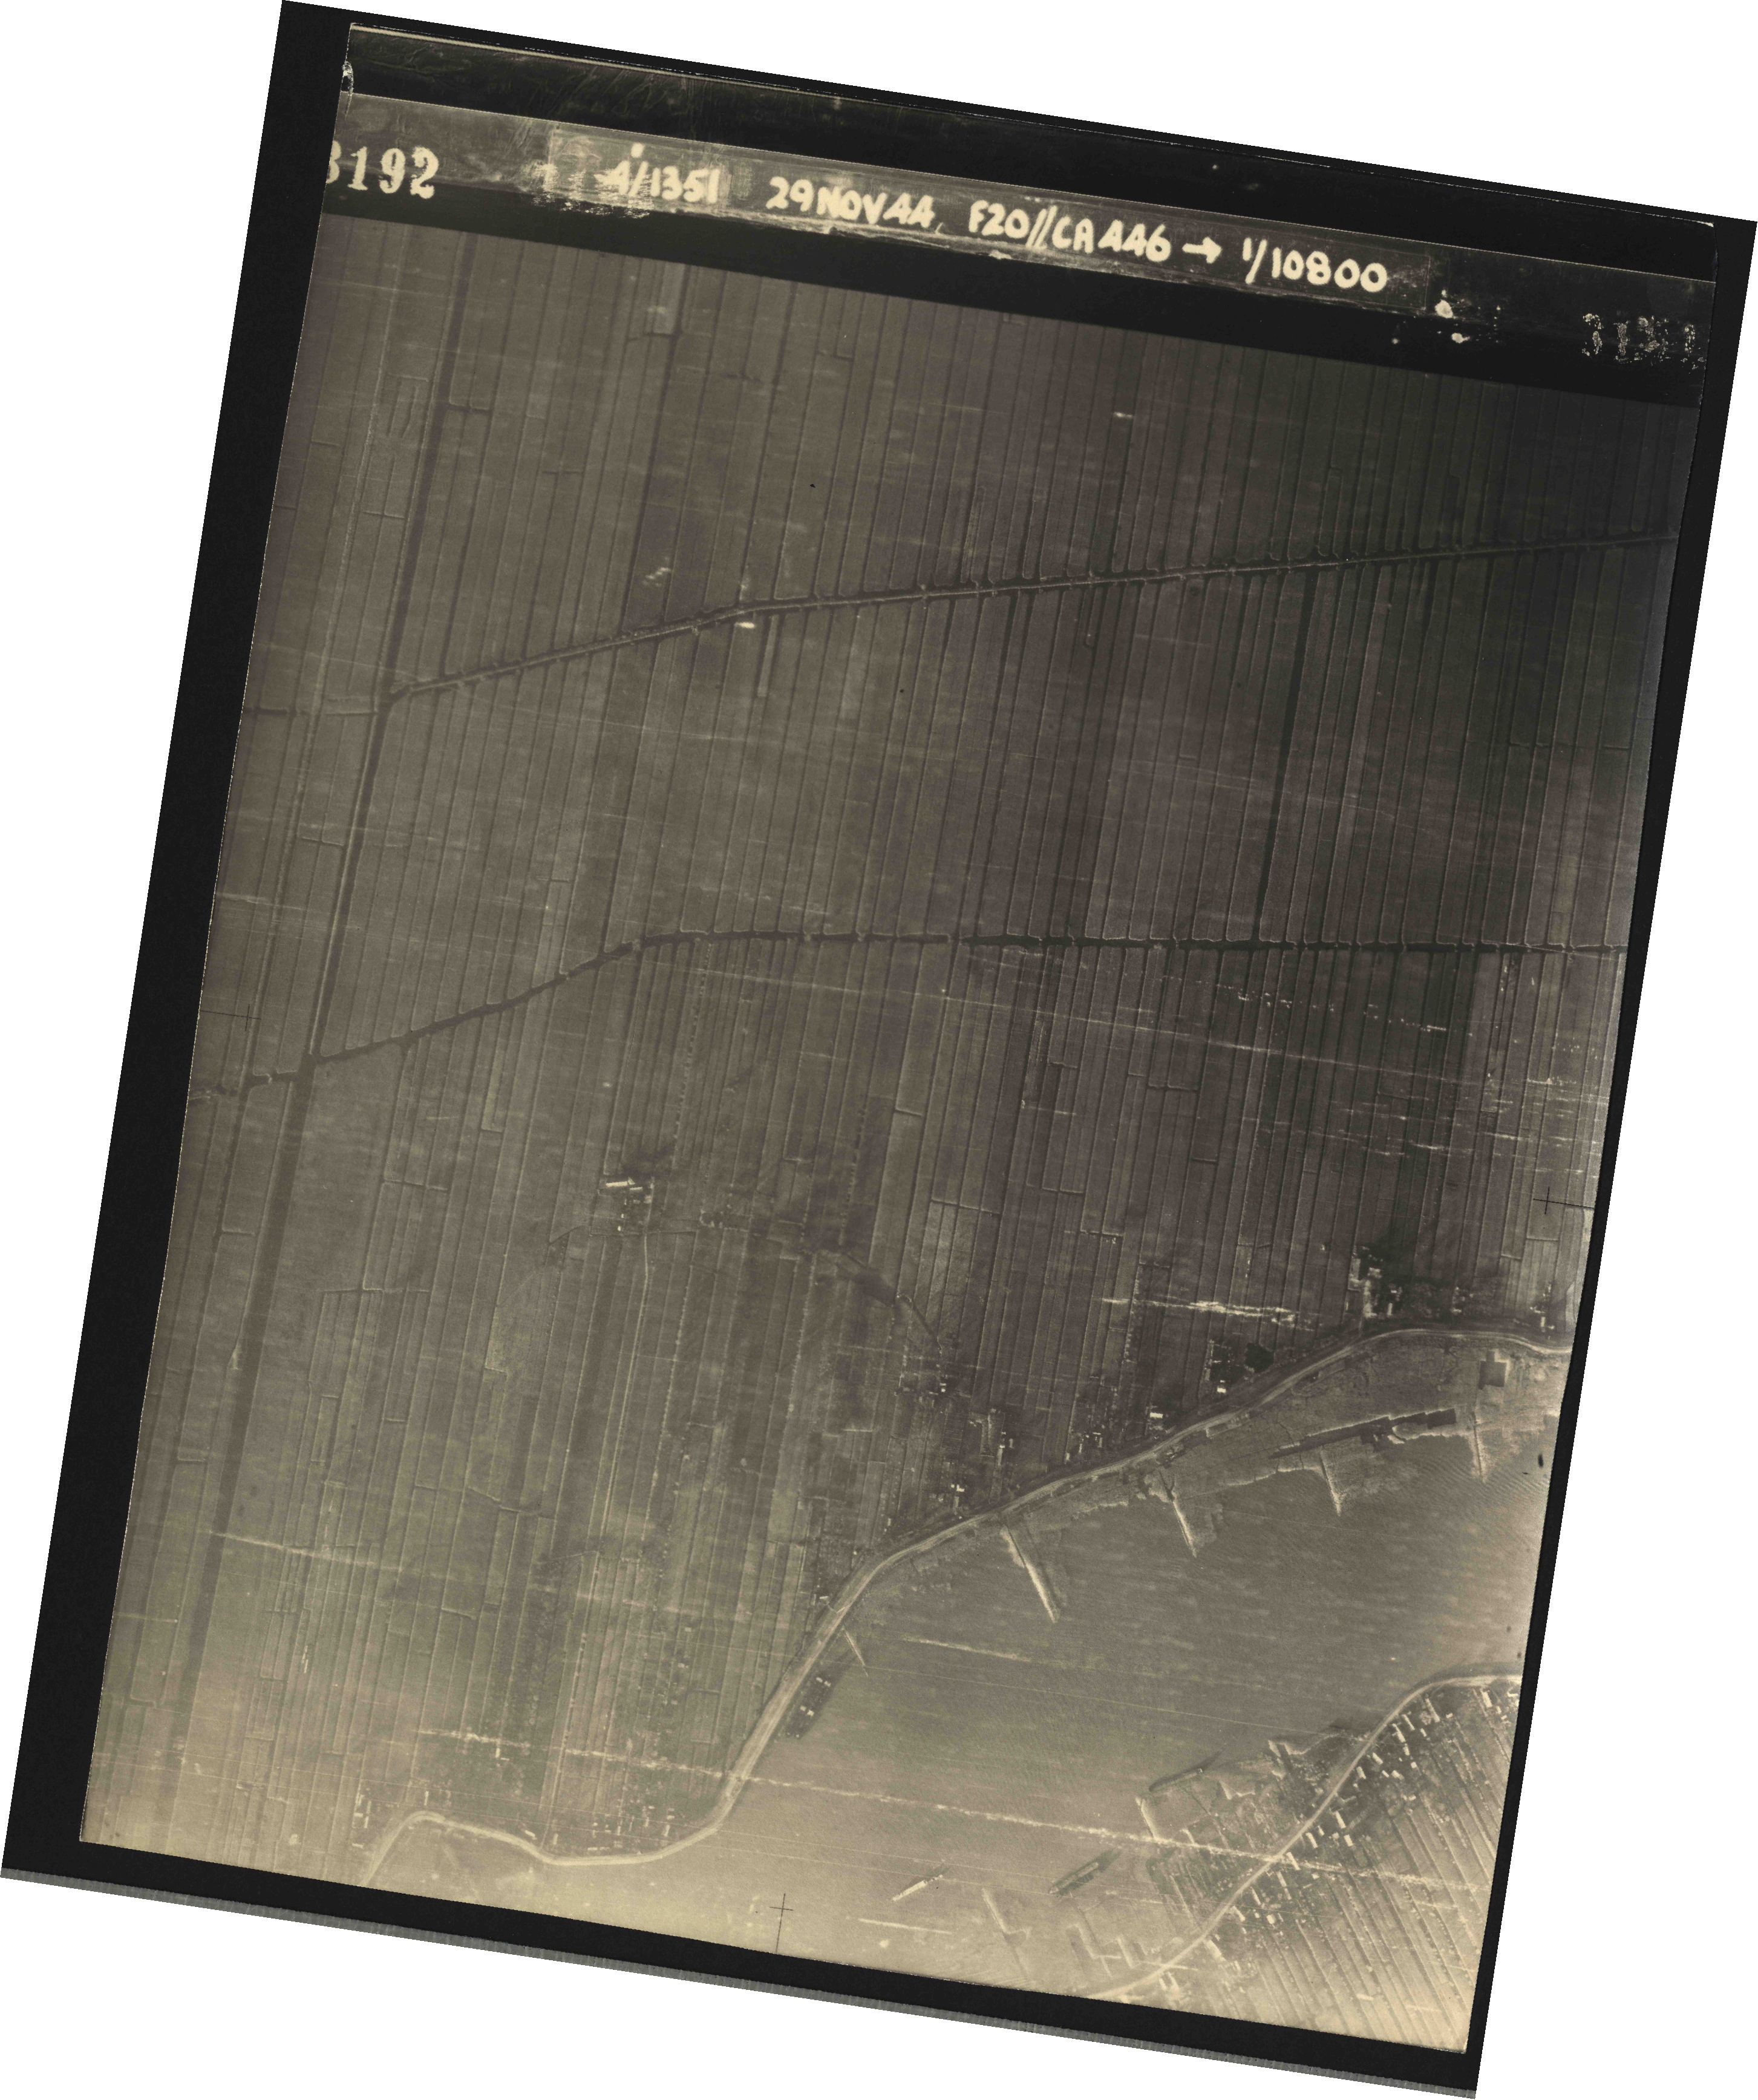 Collection RAF aerial photos 1940-1945 - flight 045, run 01, photo 3192